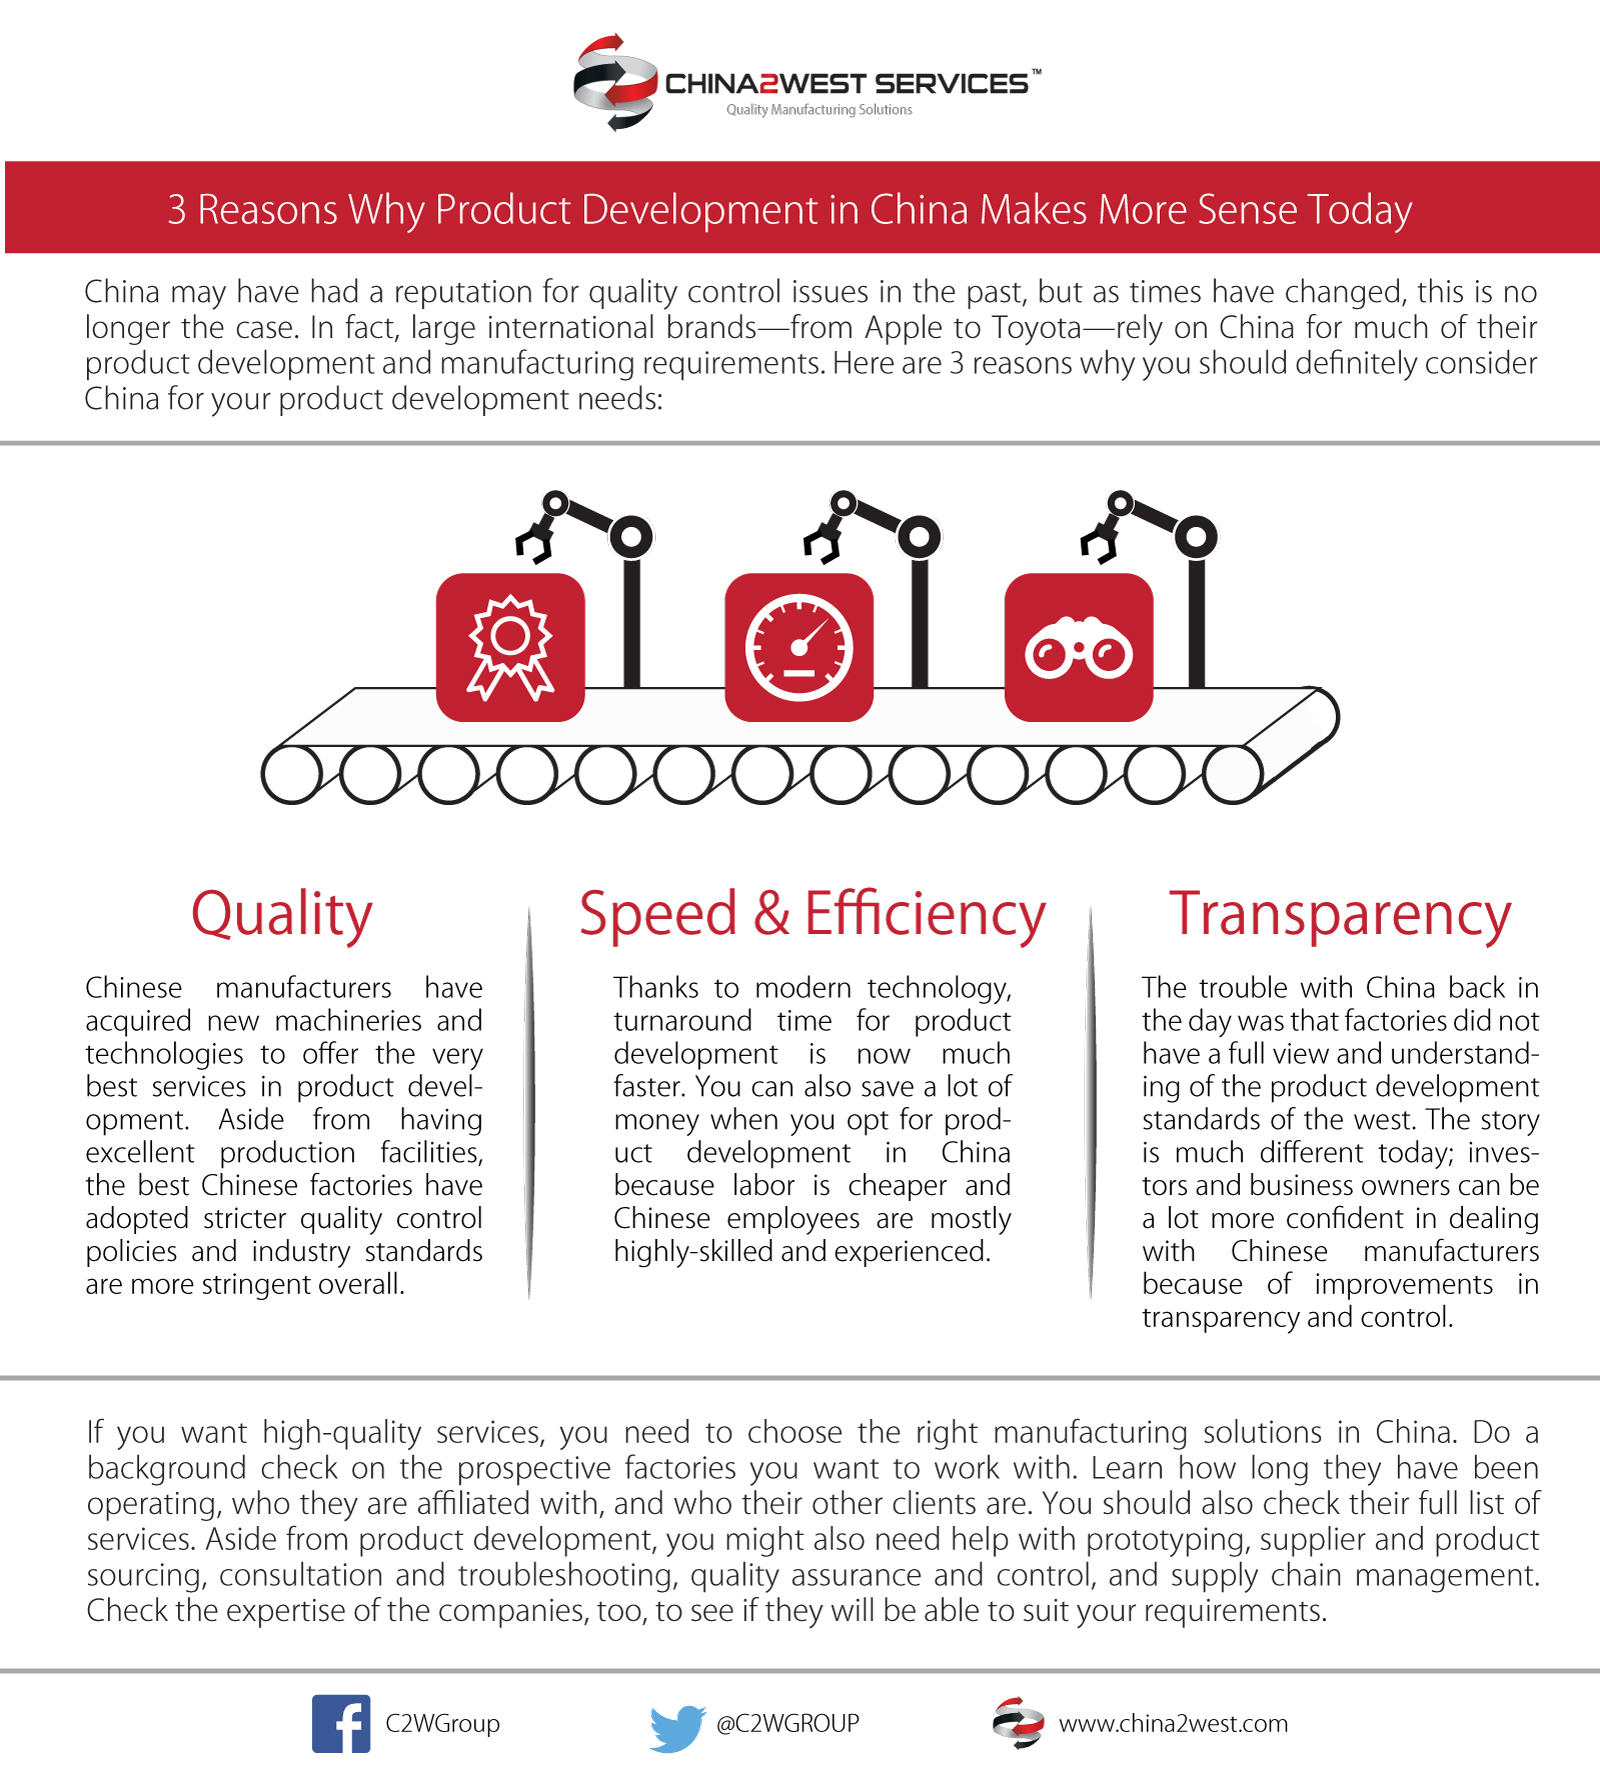 C2W Infographic - 3 Reasons Why Product Development in China Makes More Sense Today